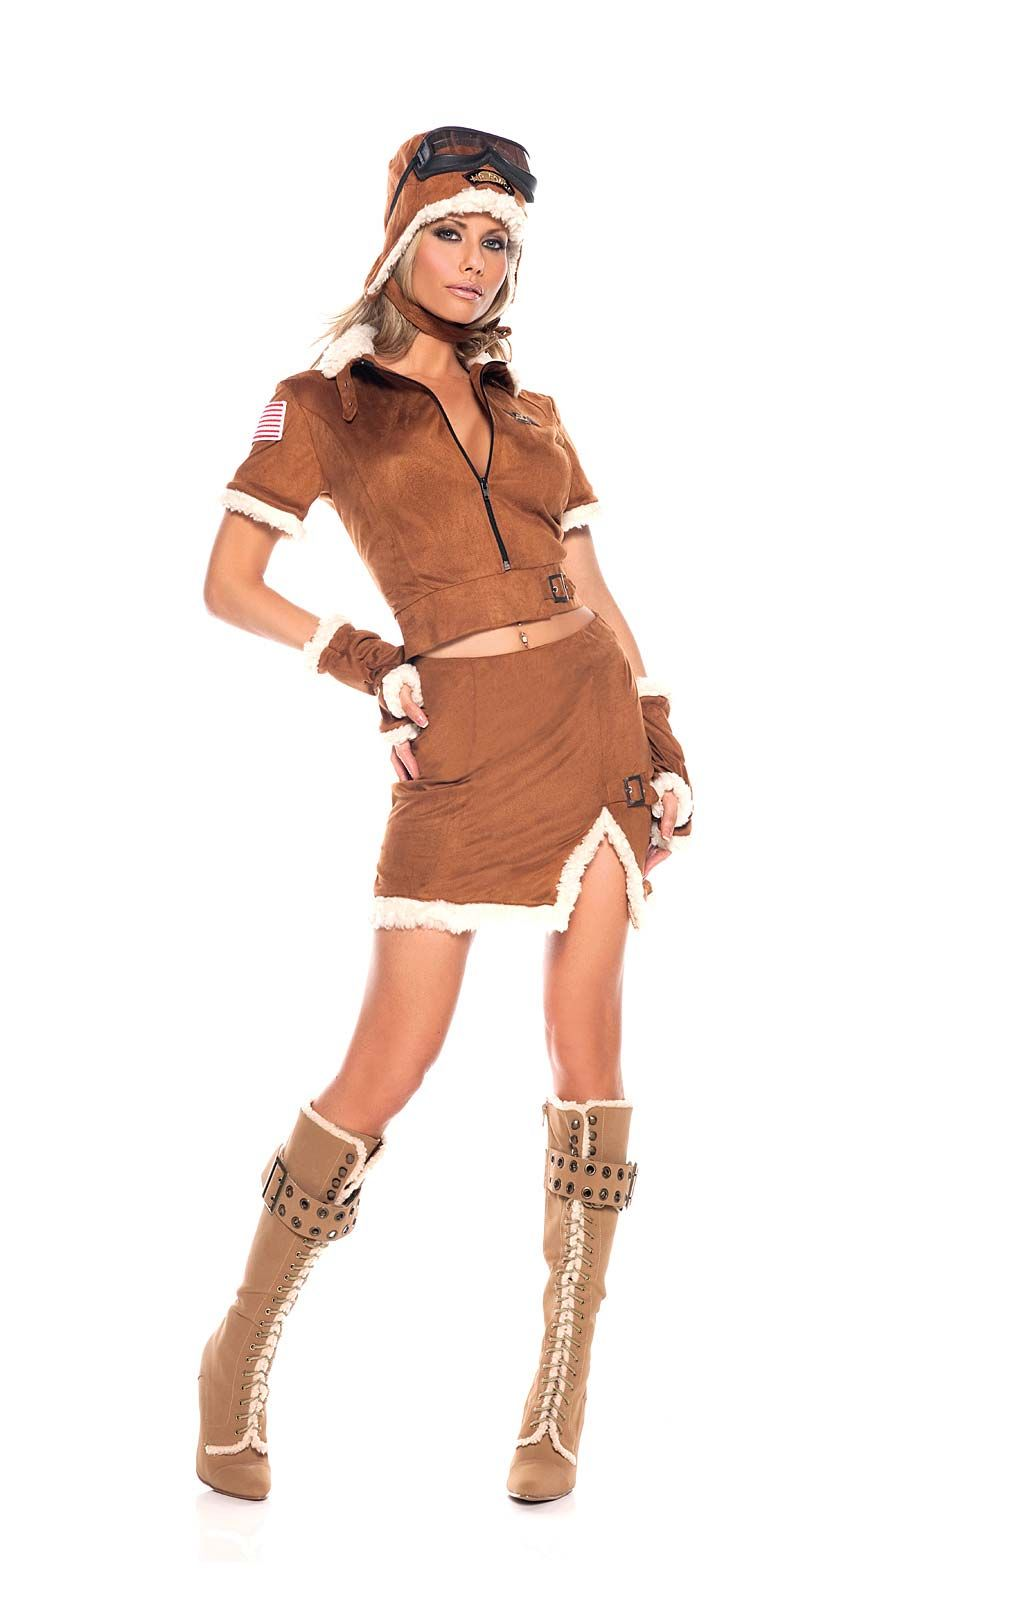 Adult sexy costumes, naughty outfits